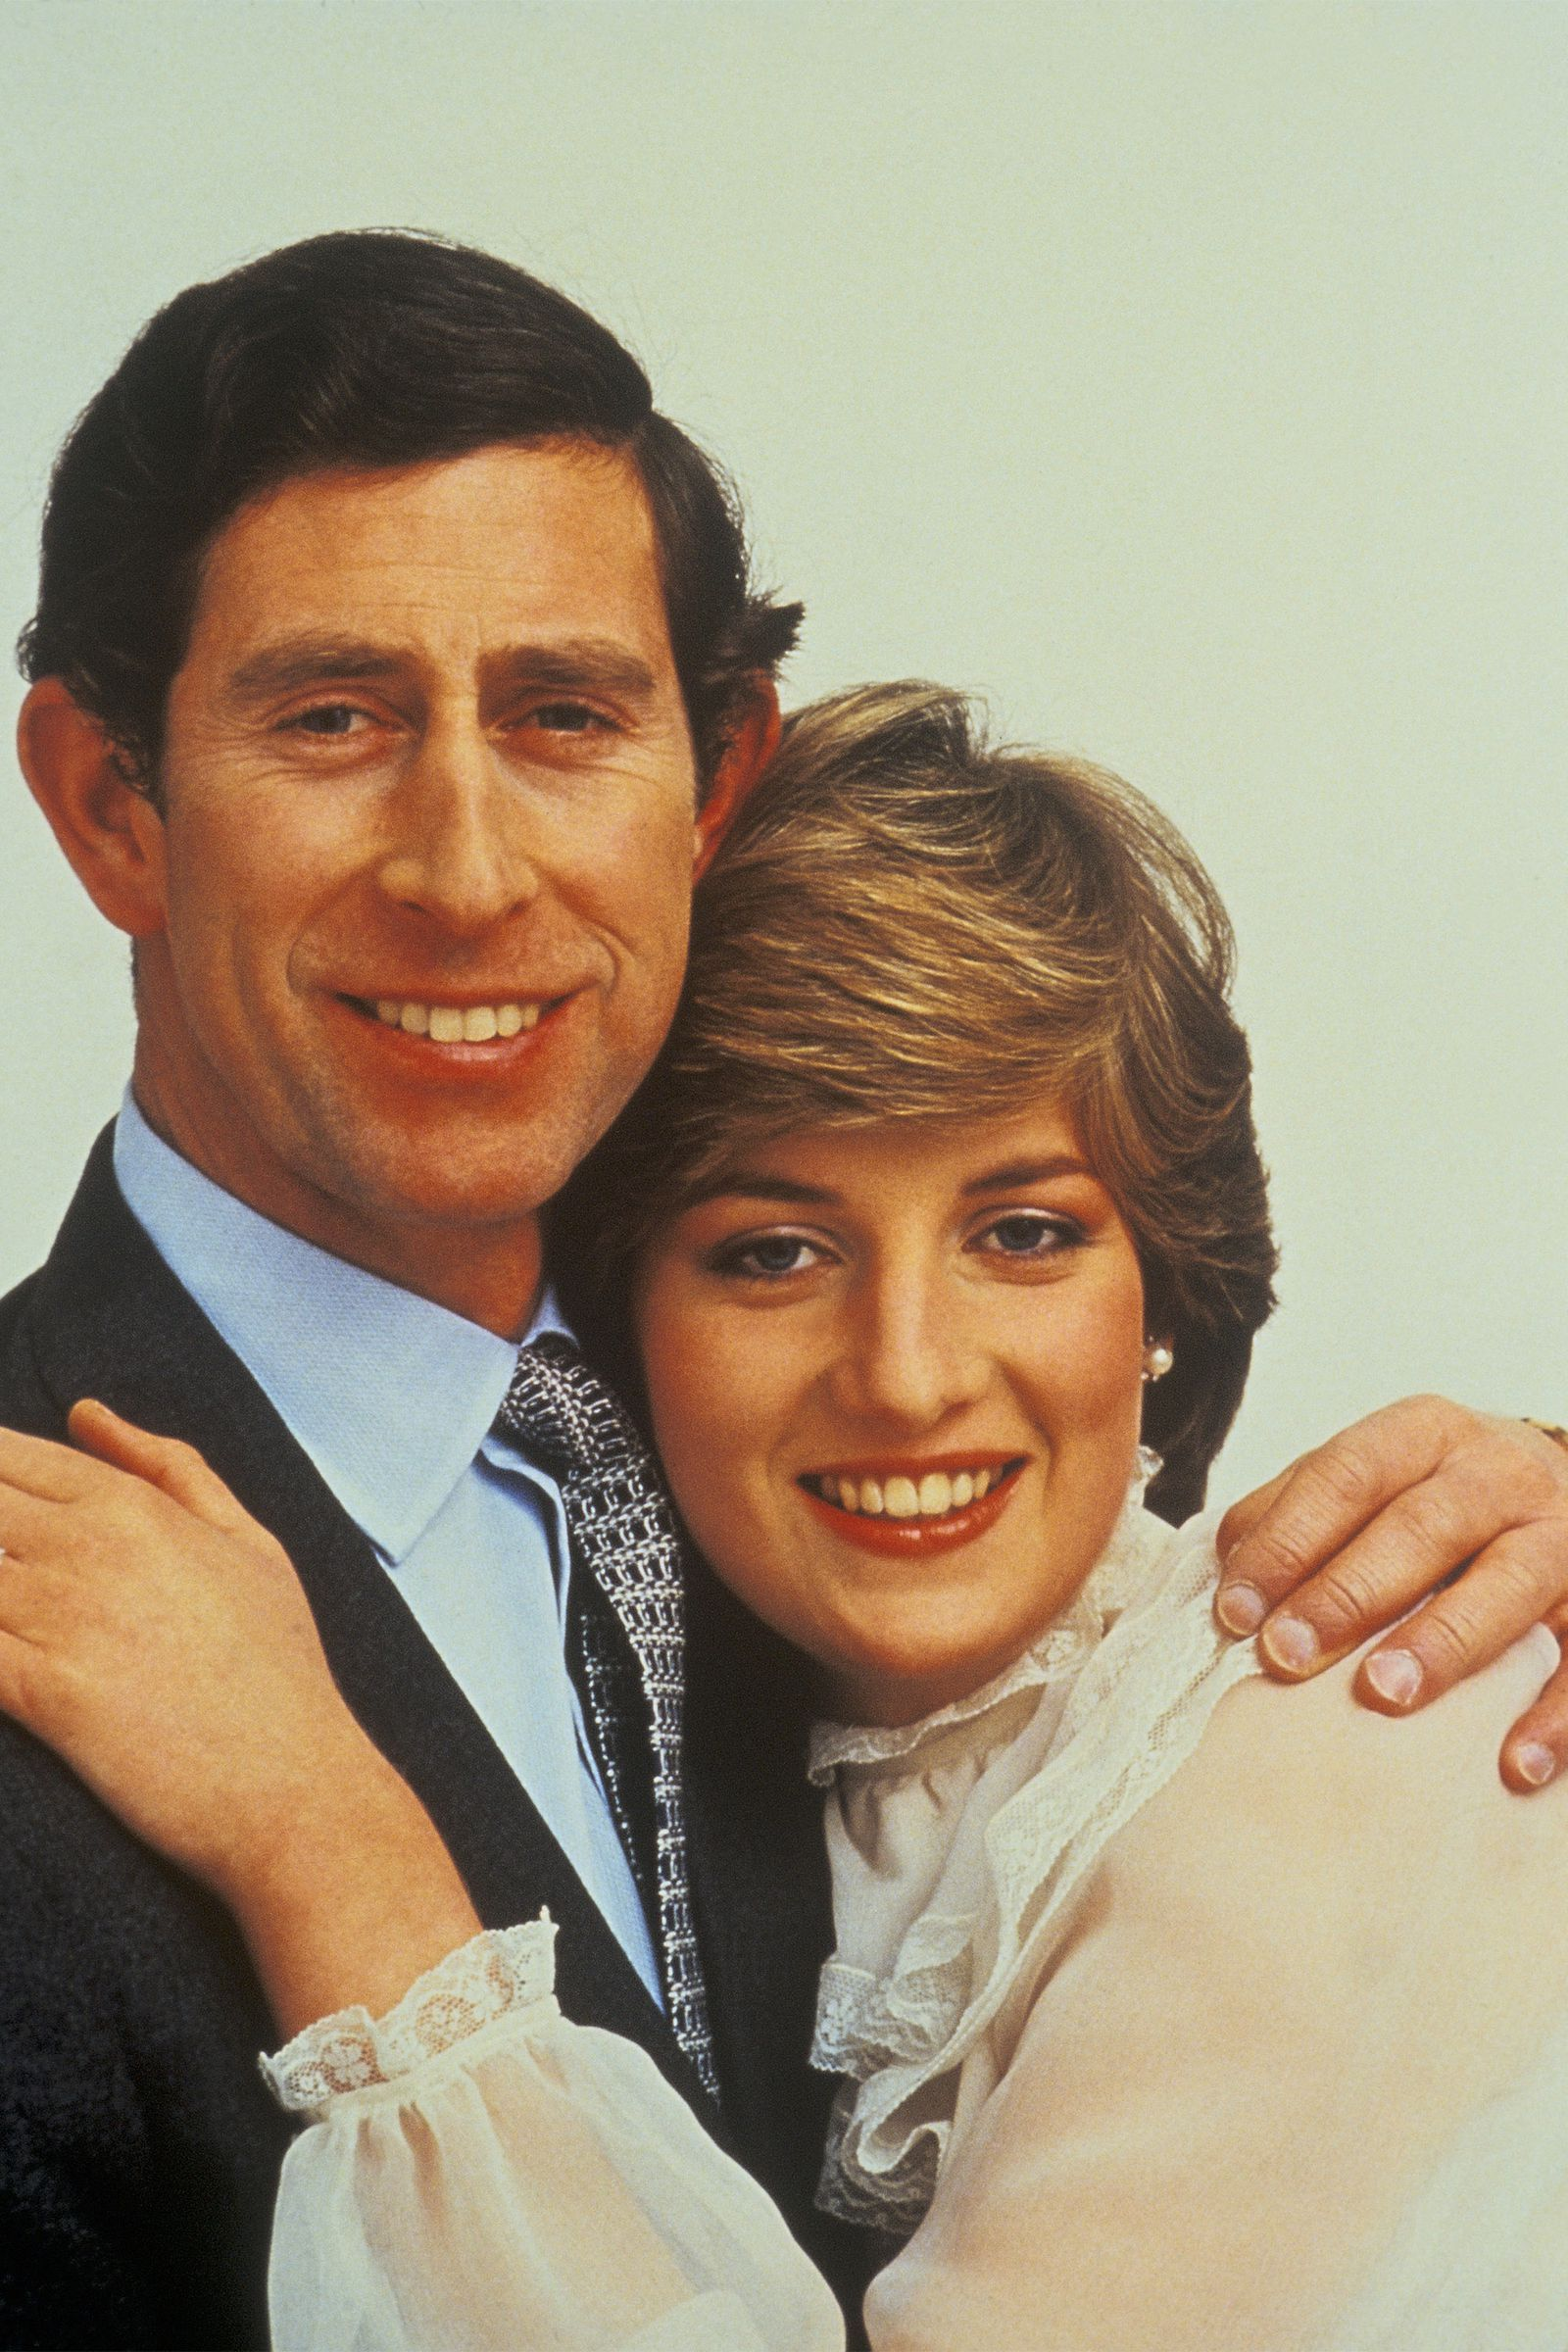 Prince Charles And Princess Diana's Relationship Through